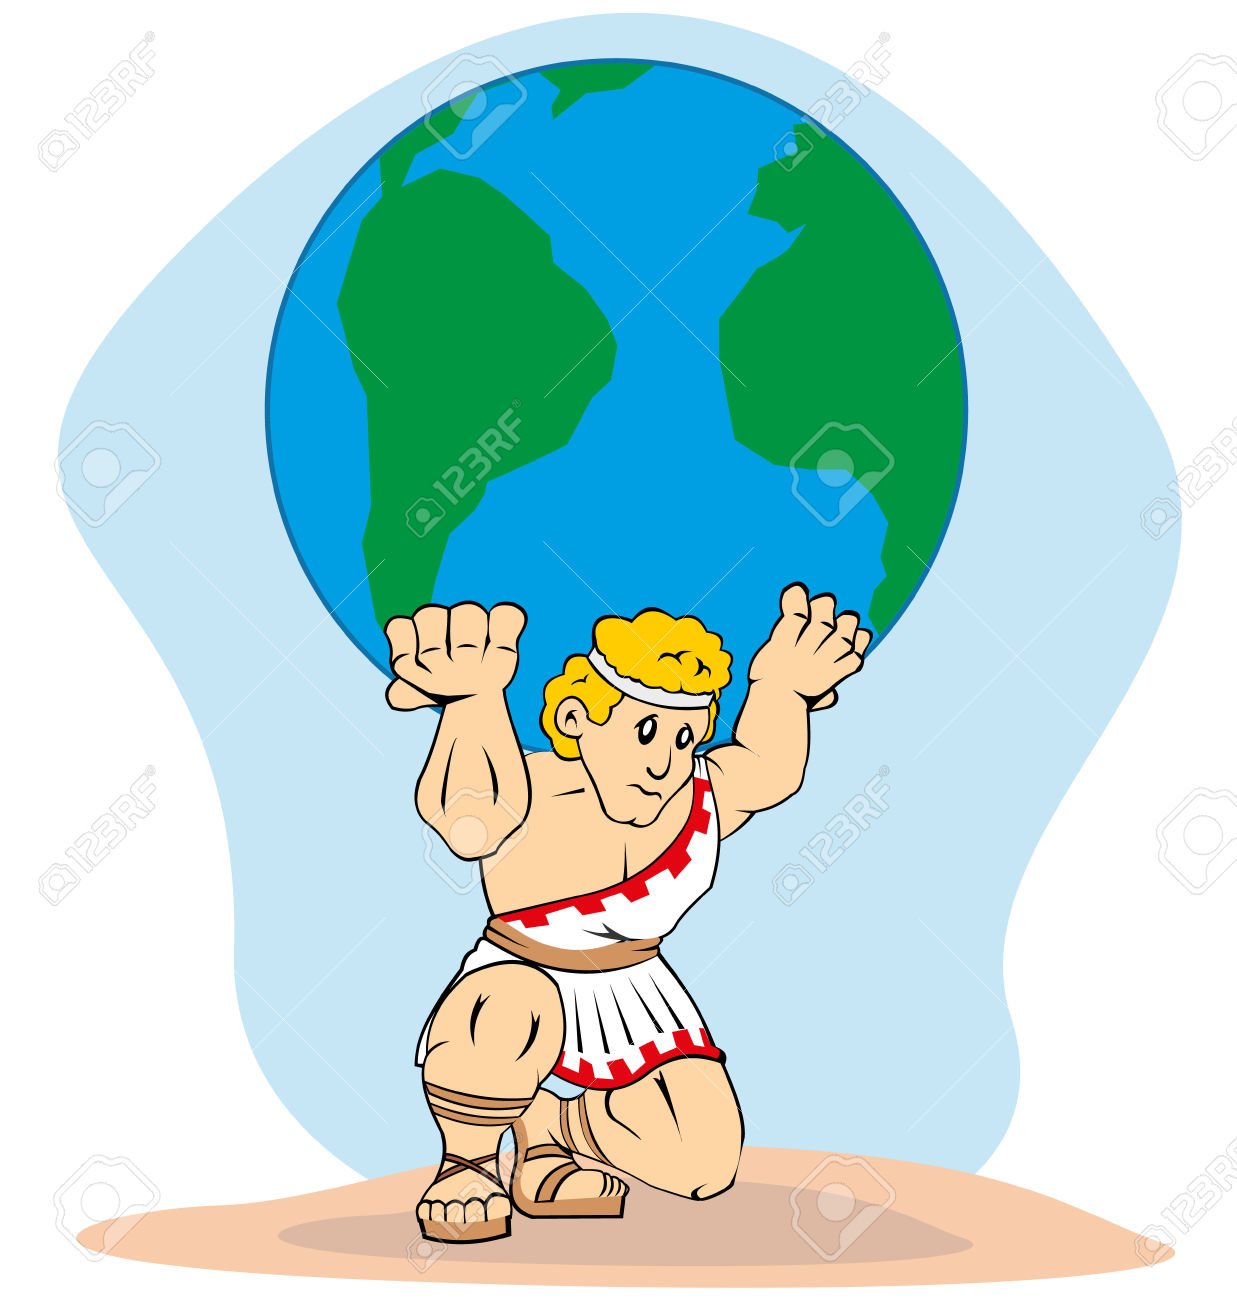 Greek god atlas clipart graphic black and white download Greek god atlas clipart - ClipartFest graphic black and white download